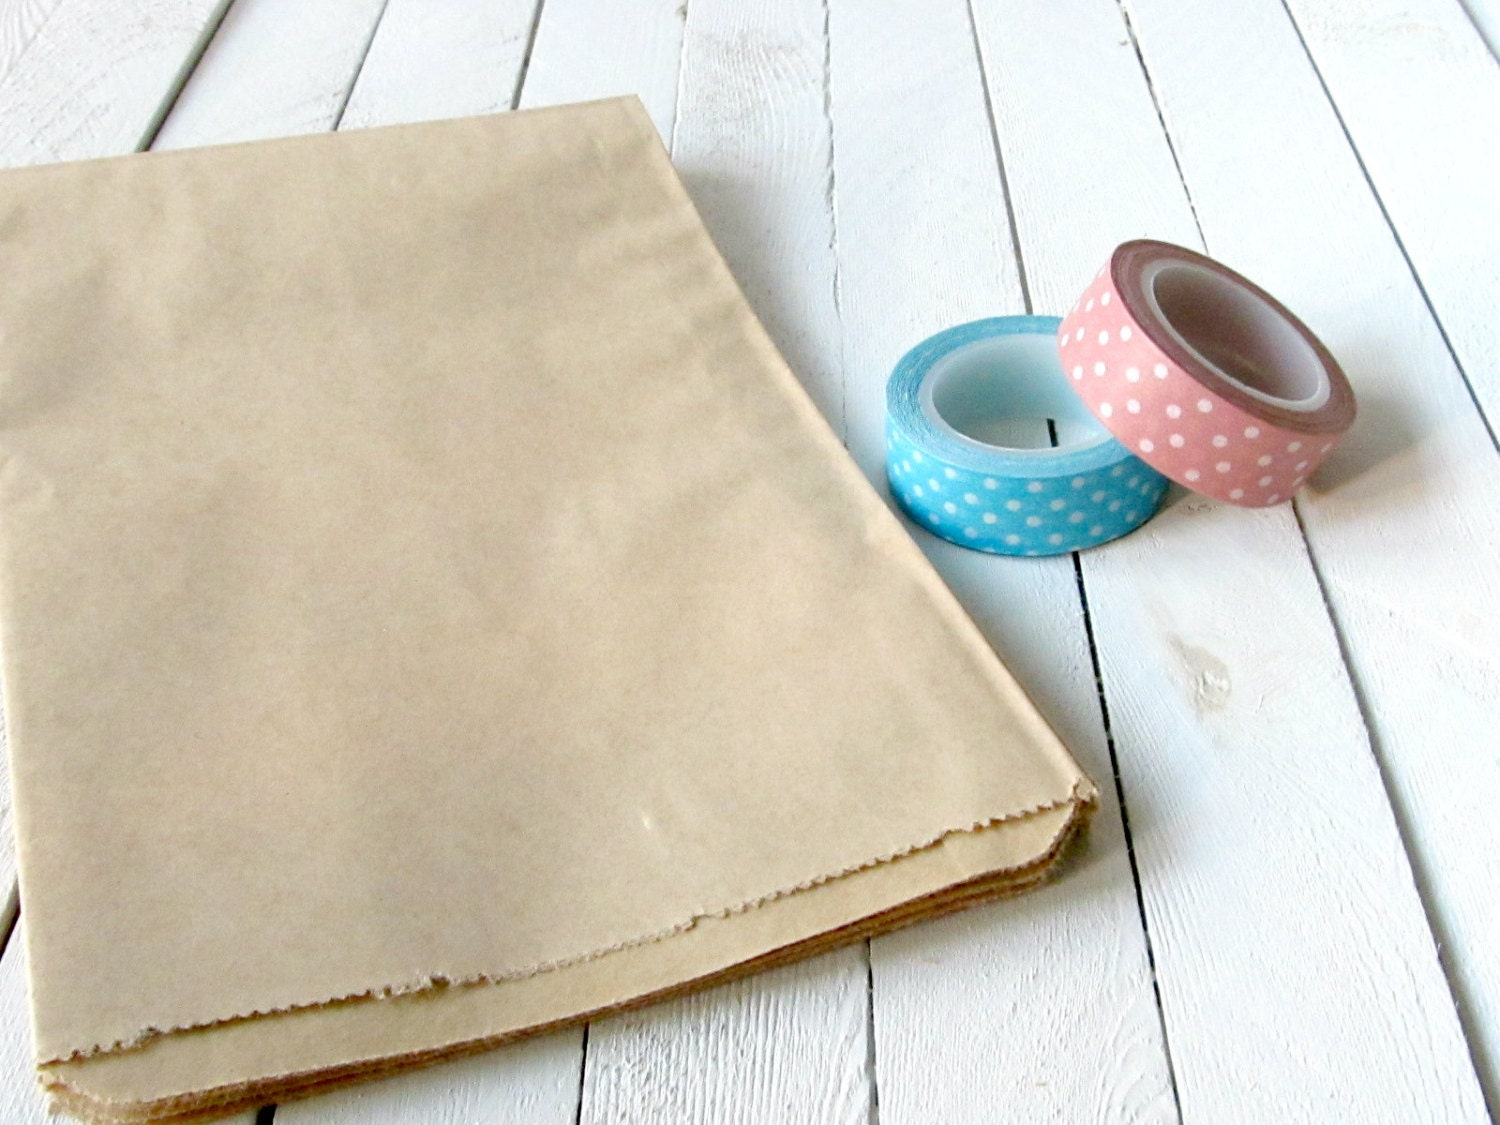 100 5 x 7.5 Kraft Brown Paper Bags Favor Bags plain paper